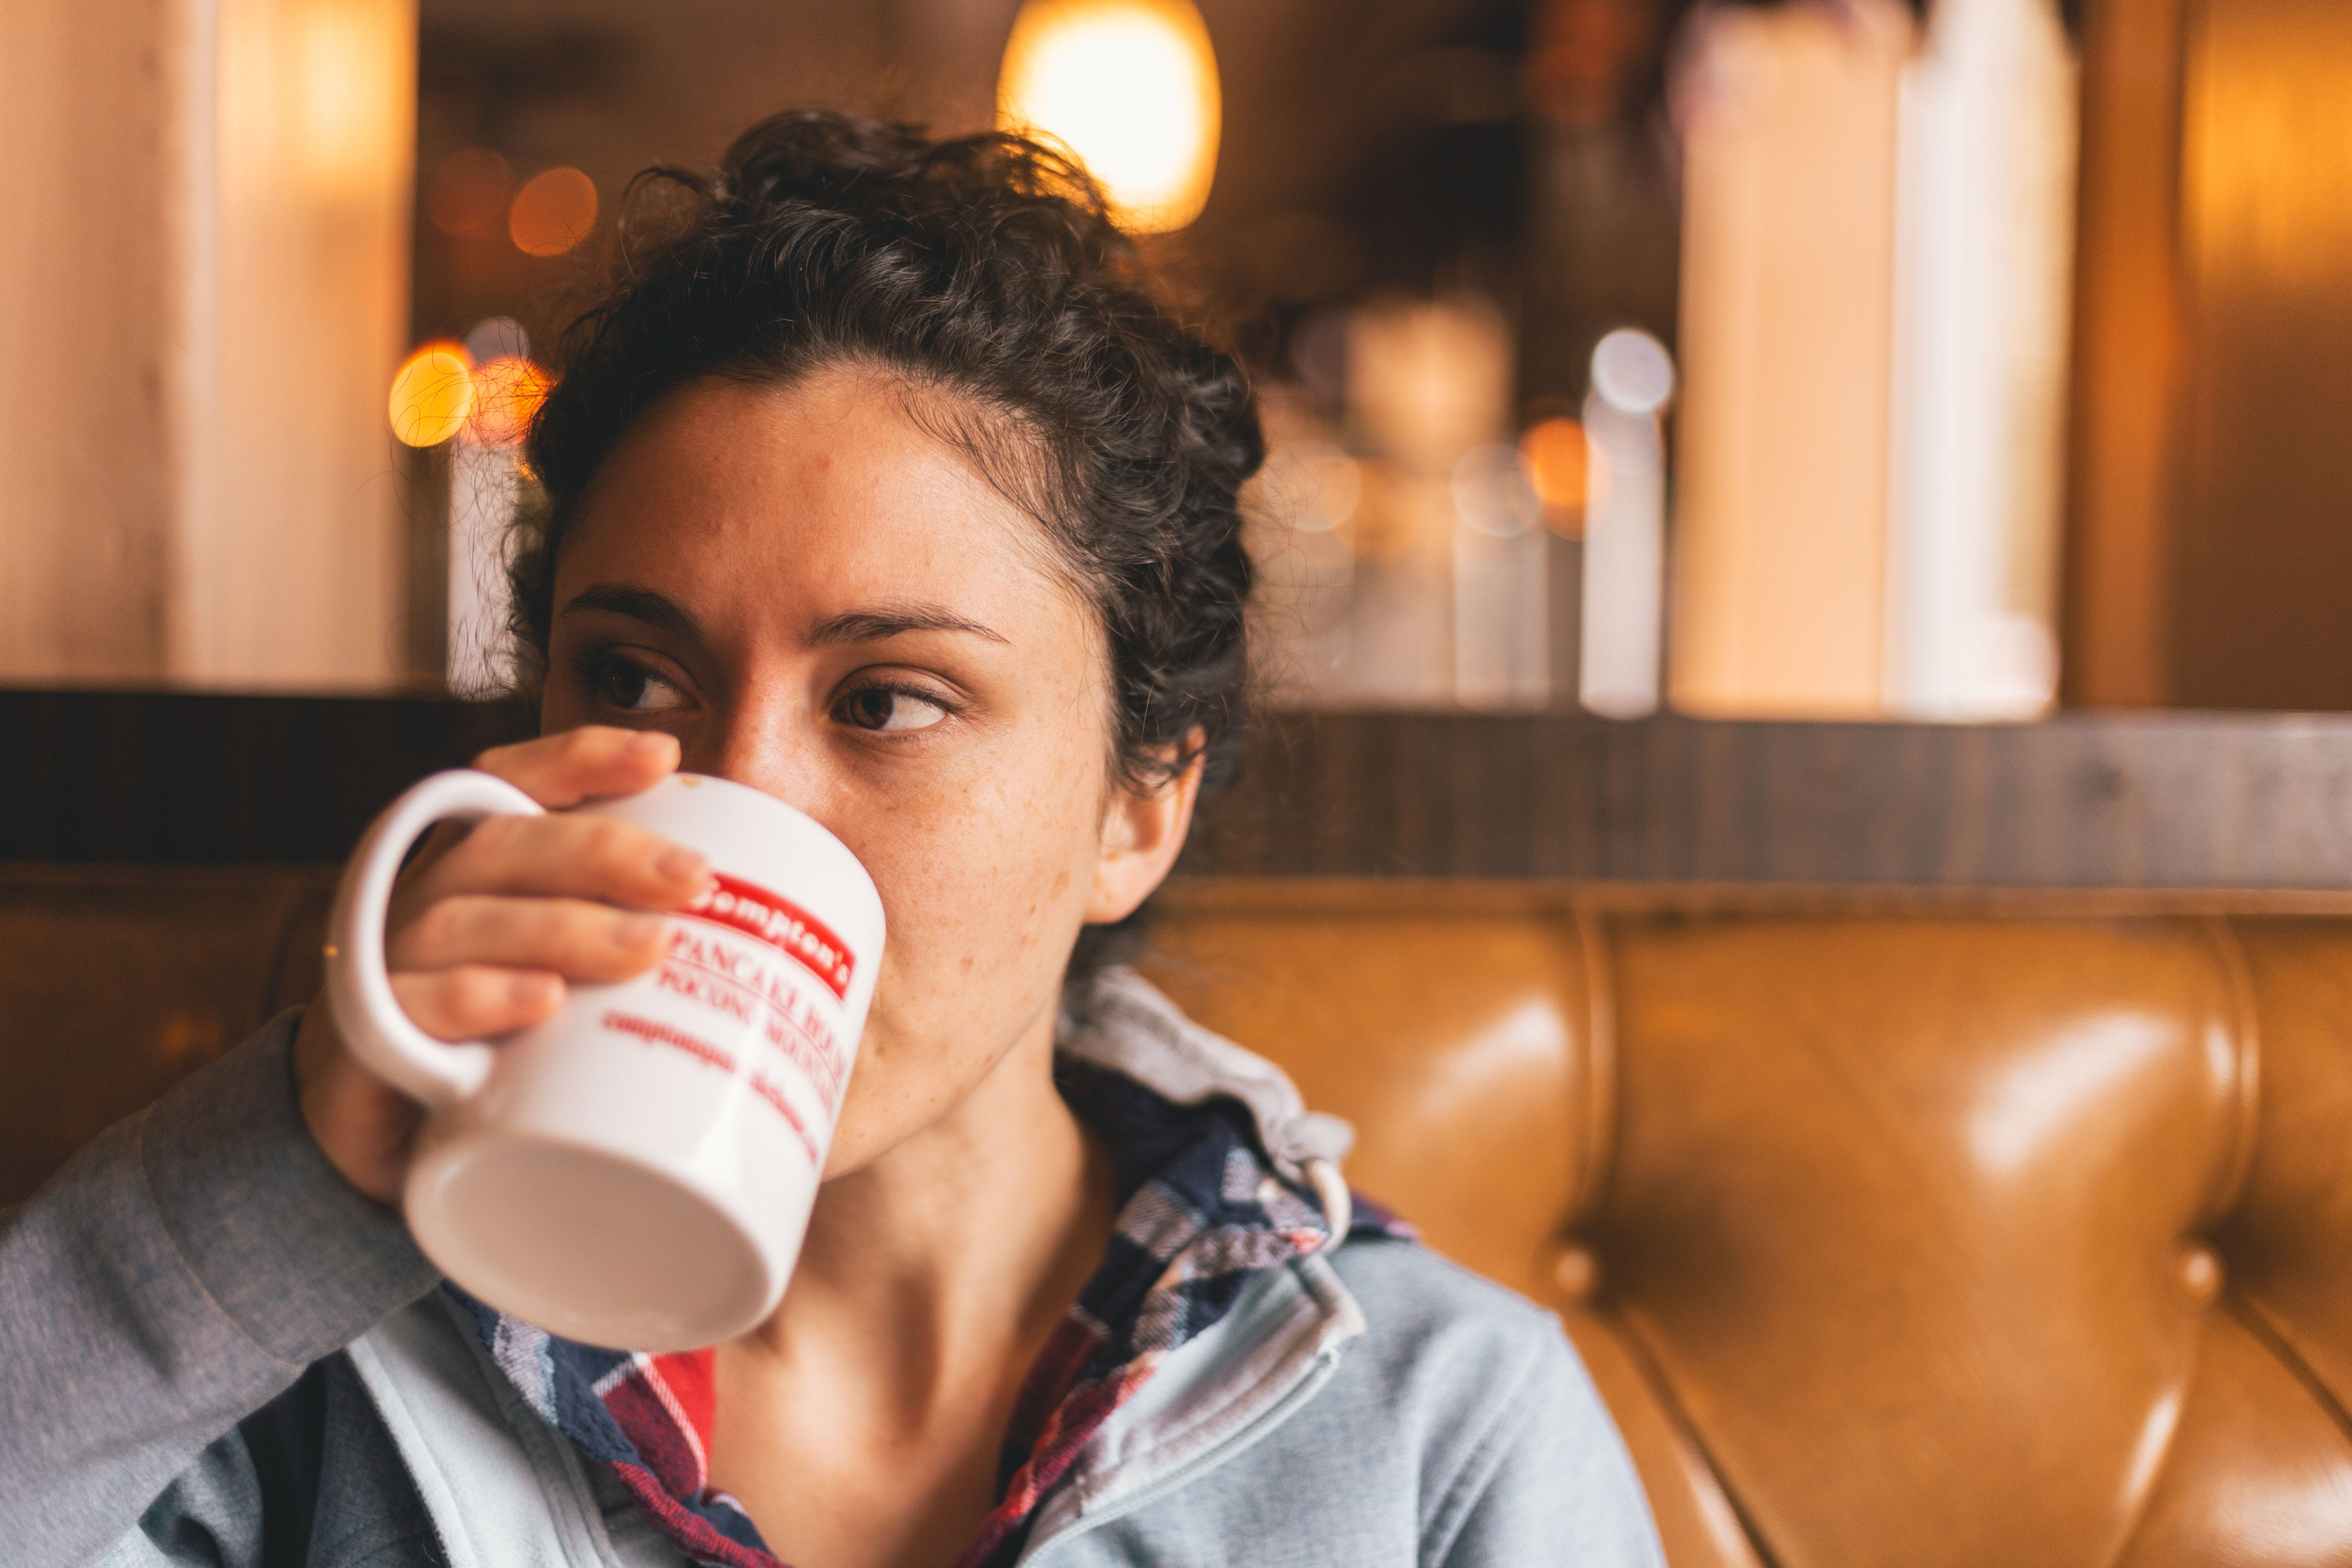 Woman Drinking Cup of Beverage